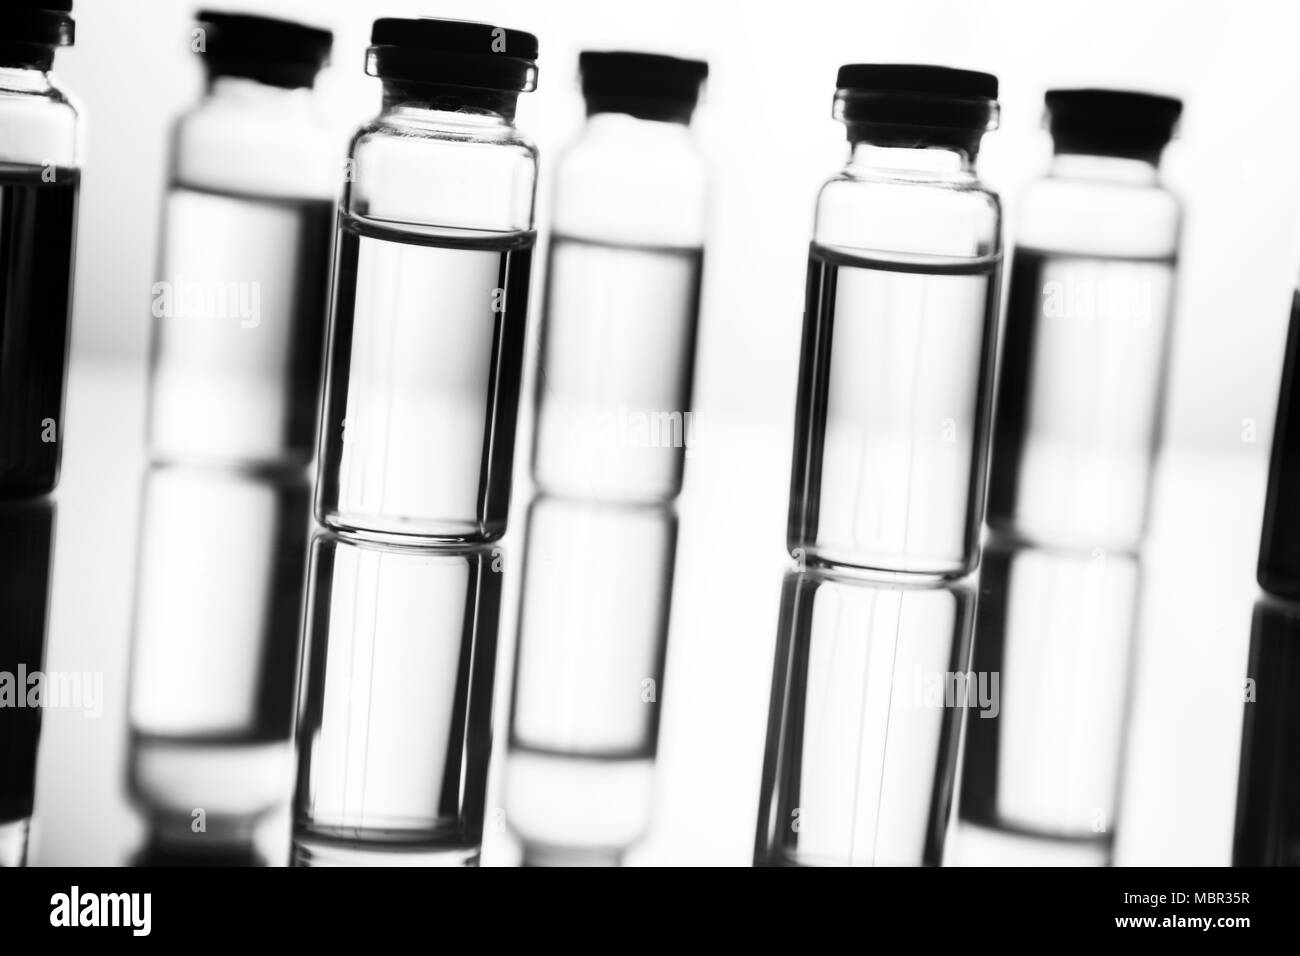 Group of ampoules with a transparent medicine in medical laboratory - Stock Image